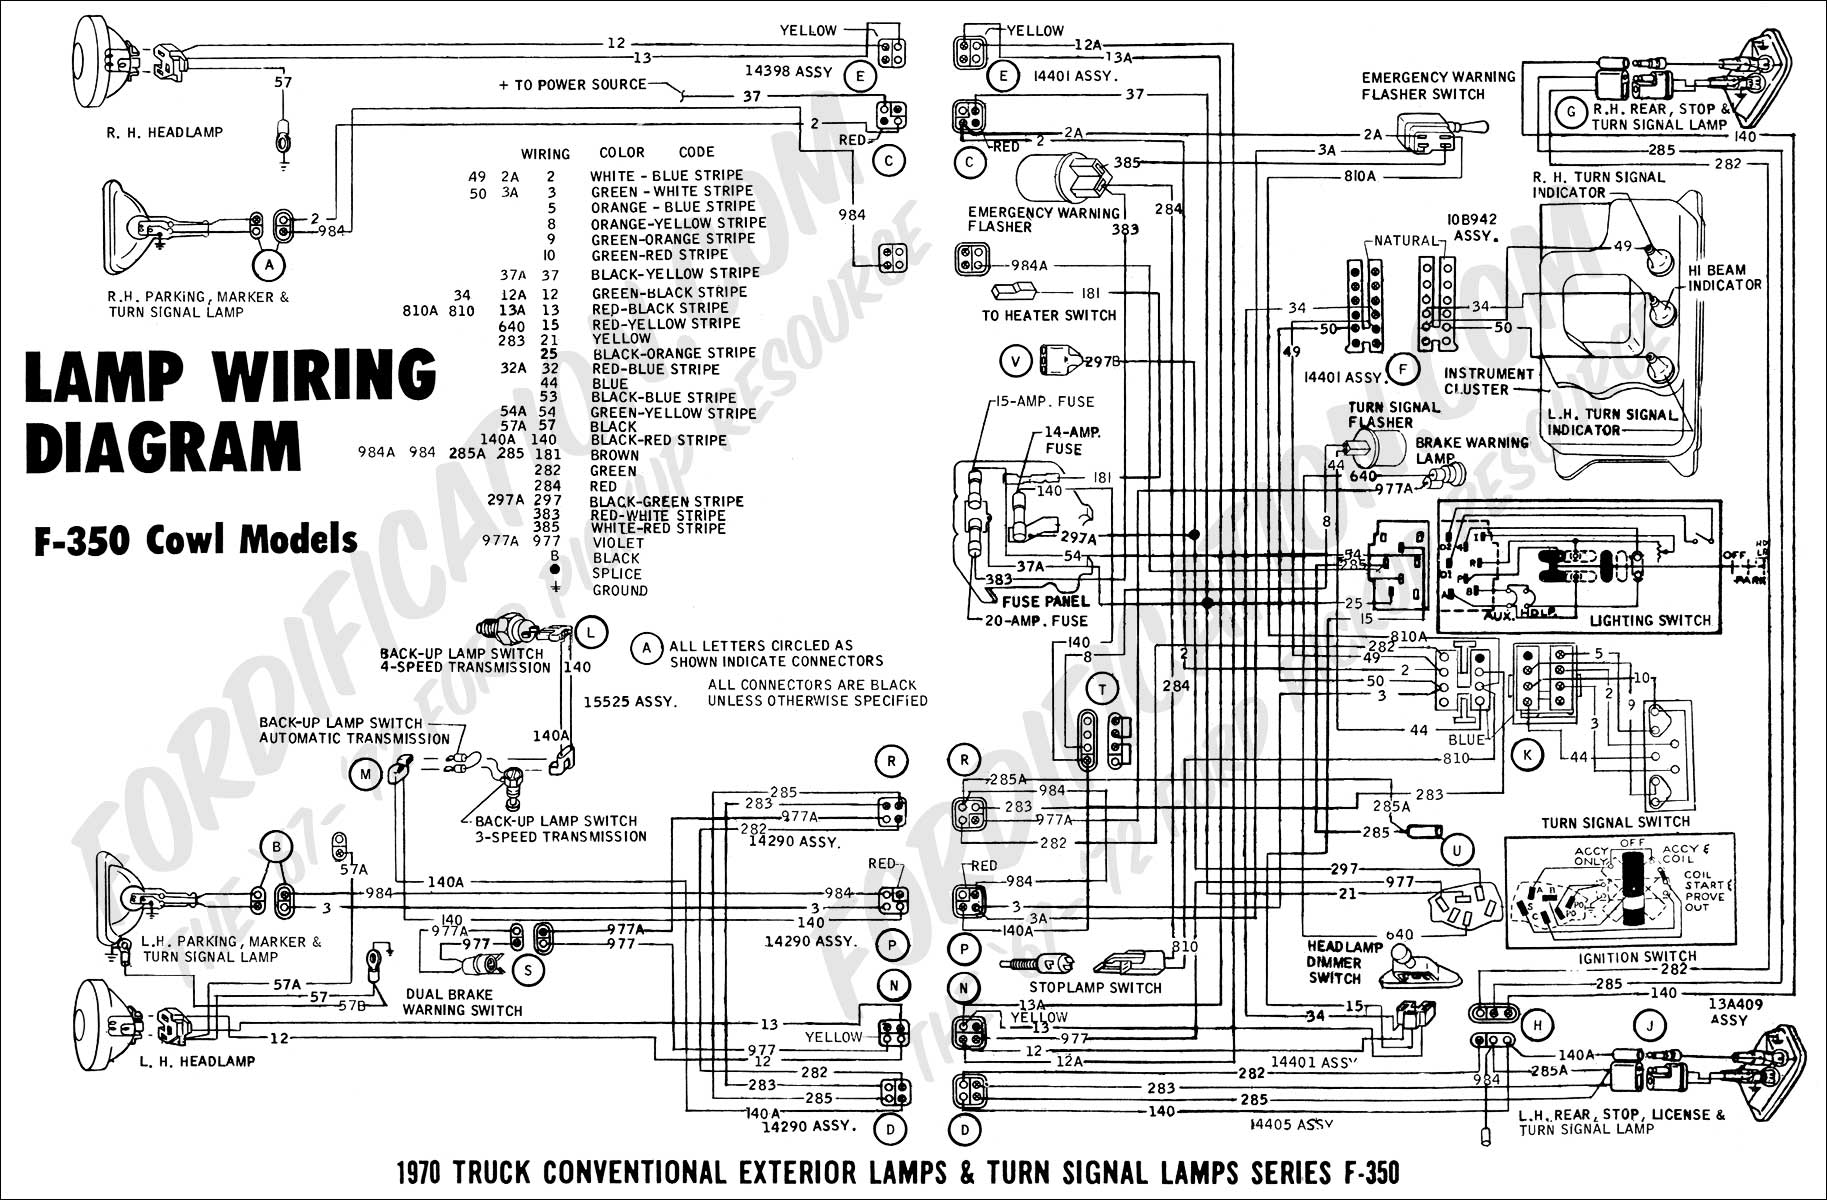 2001 ford truck headlight switch wiring diagrams wiring diagram rh prestonfarmmotors co show wiring diagram of bauer b236b oven show wiring diagram of bauer b236b oven